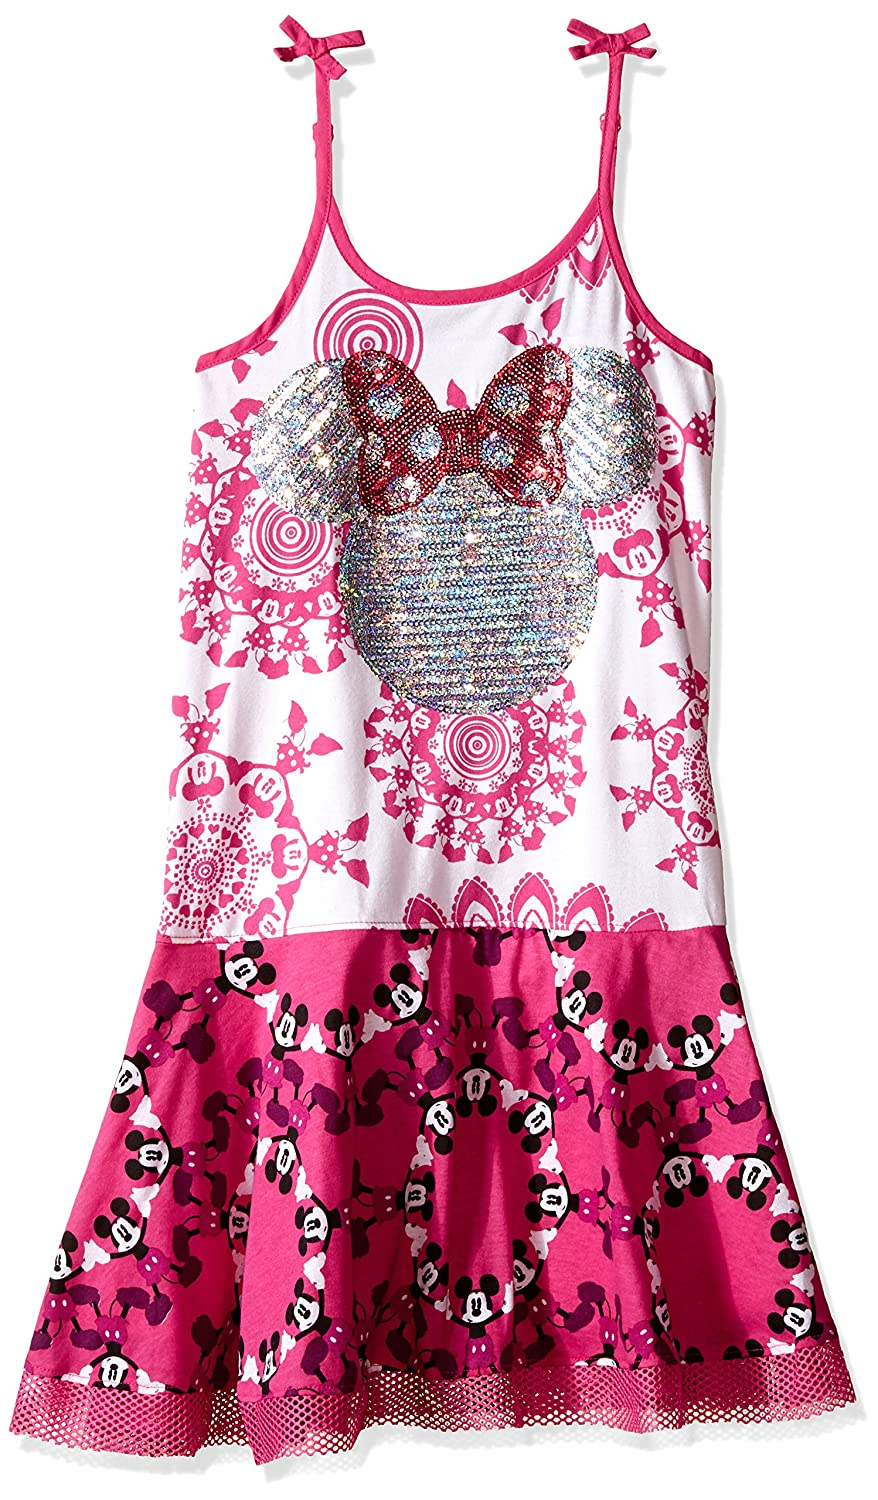 10 ans Desigual Robe Fille Icourire Rose 61v3db2